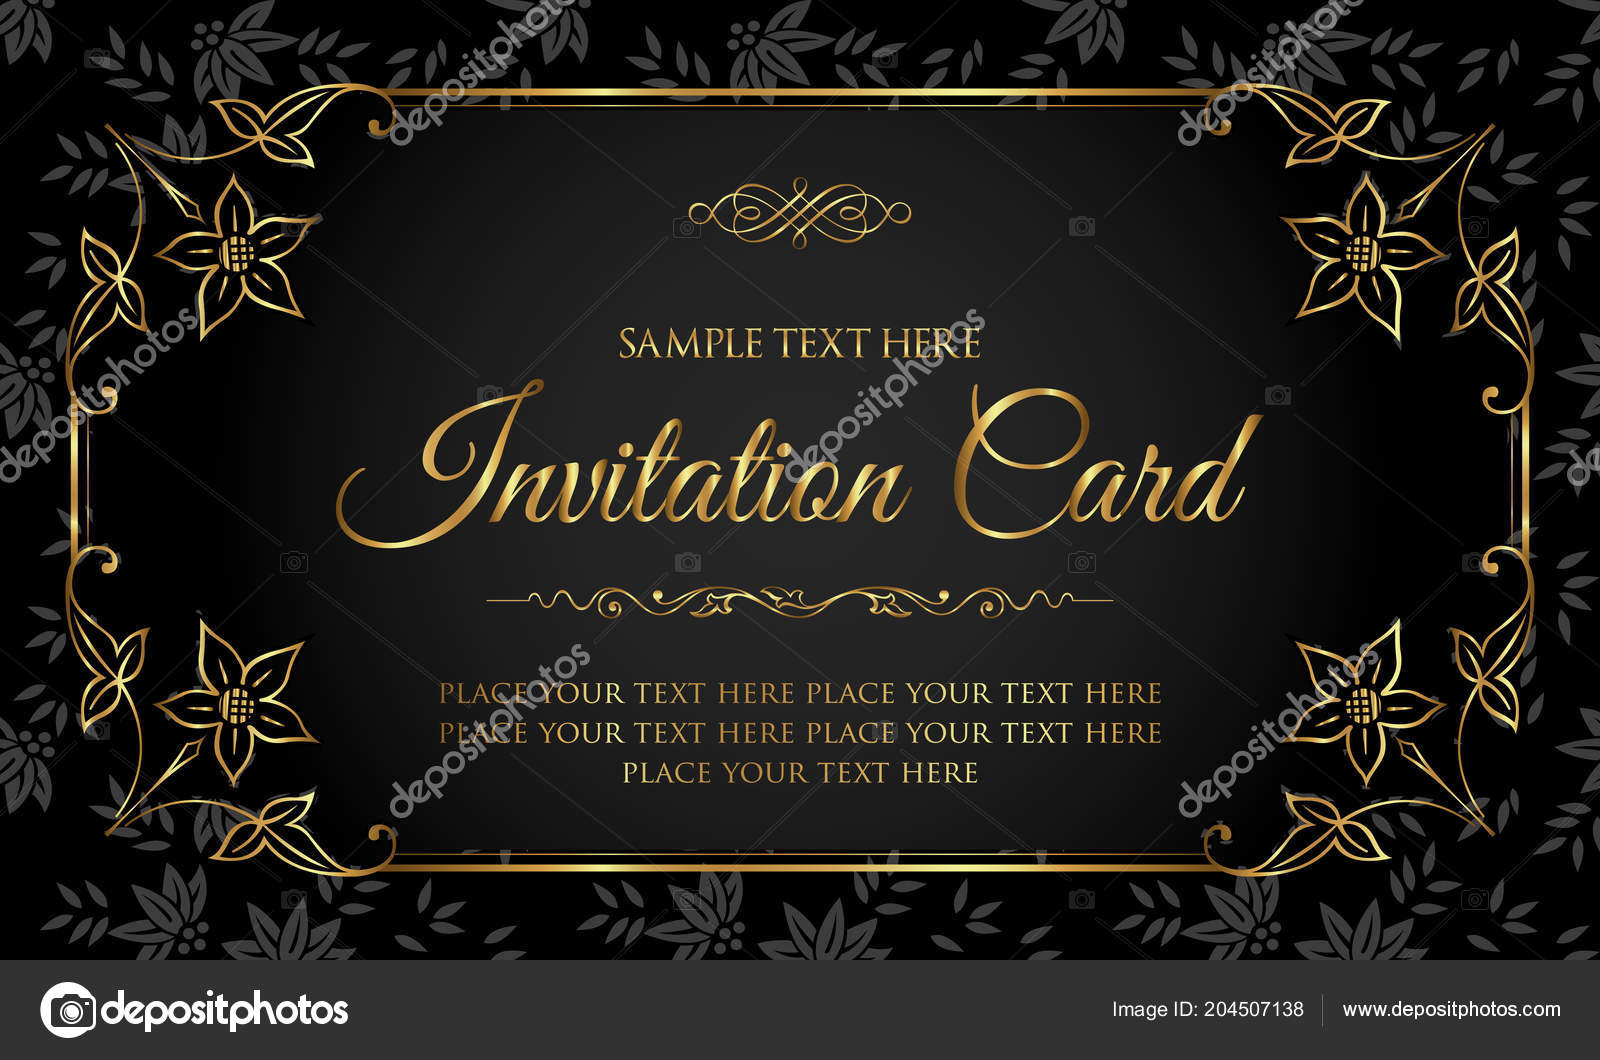 Invitation black and gold | Luxury Black Gold Invitation Card Vintage Style  — Stock Vector © bluepencil #204507138